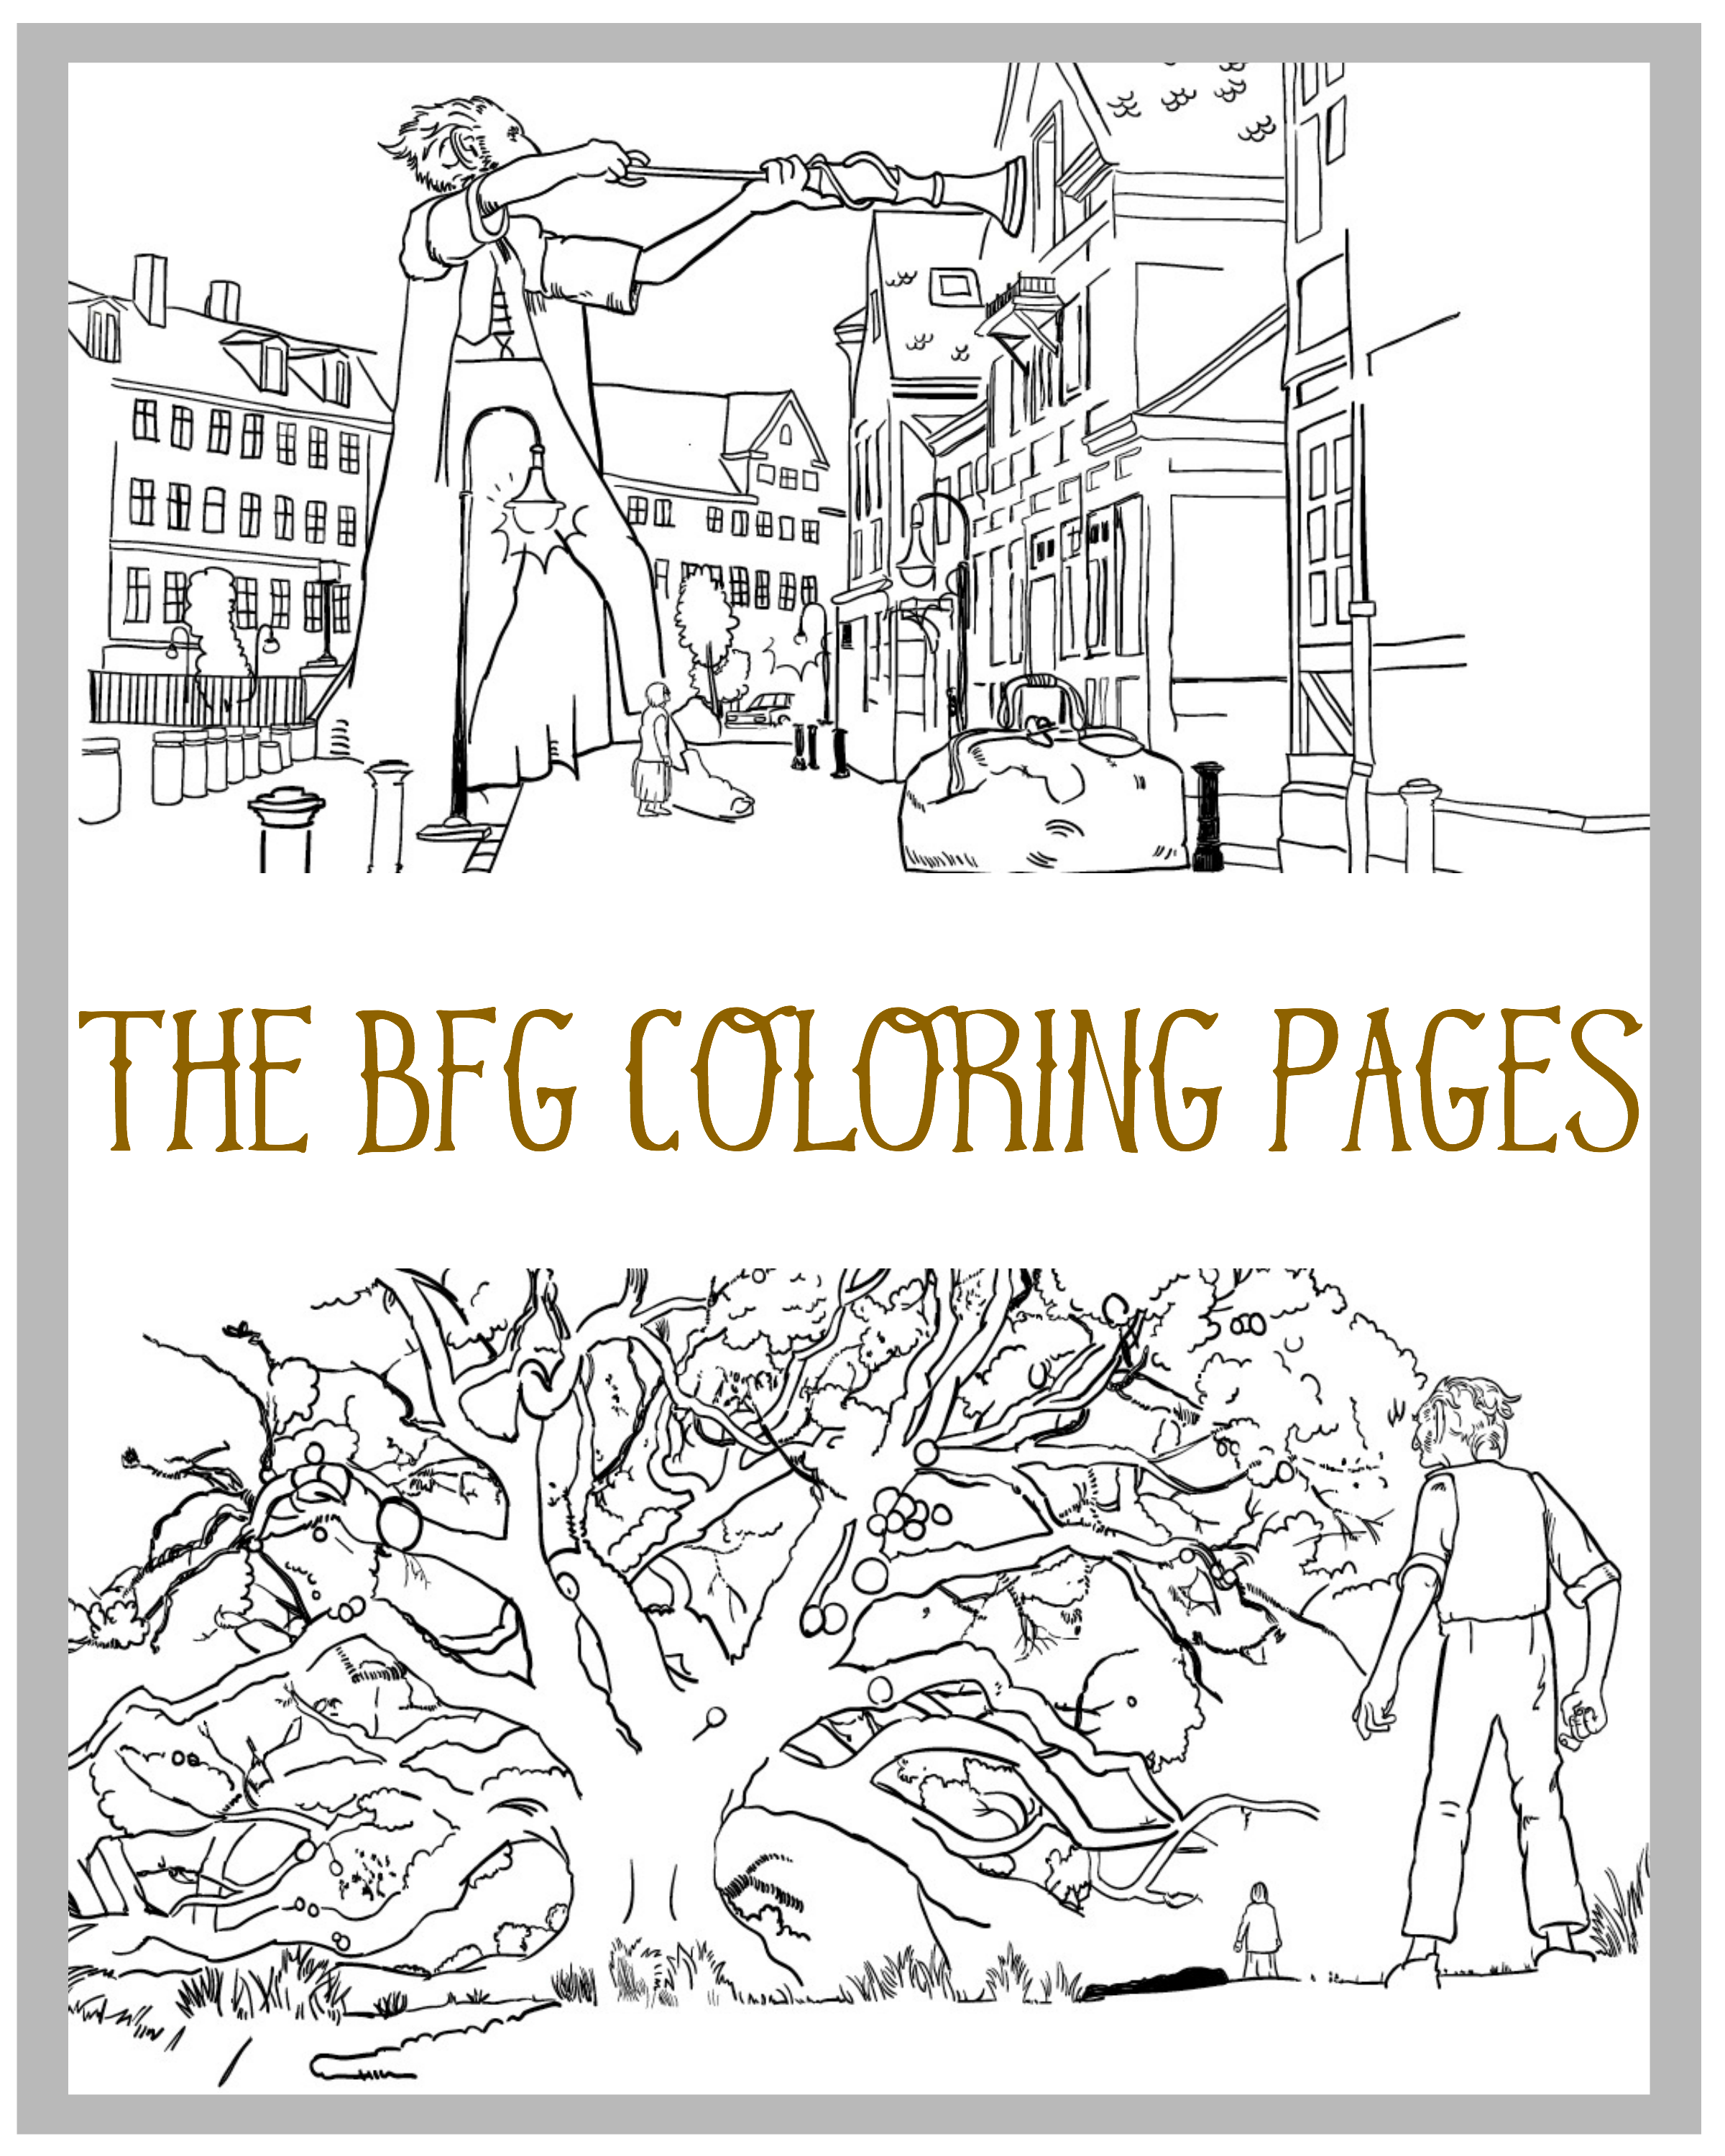 The BFG Coloring Pages are now available to download and print as many times as you'd like.